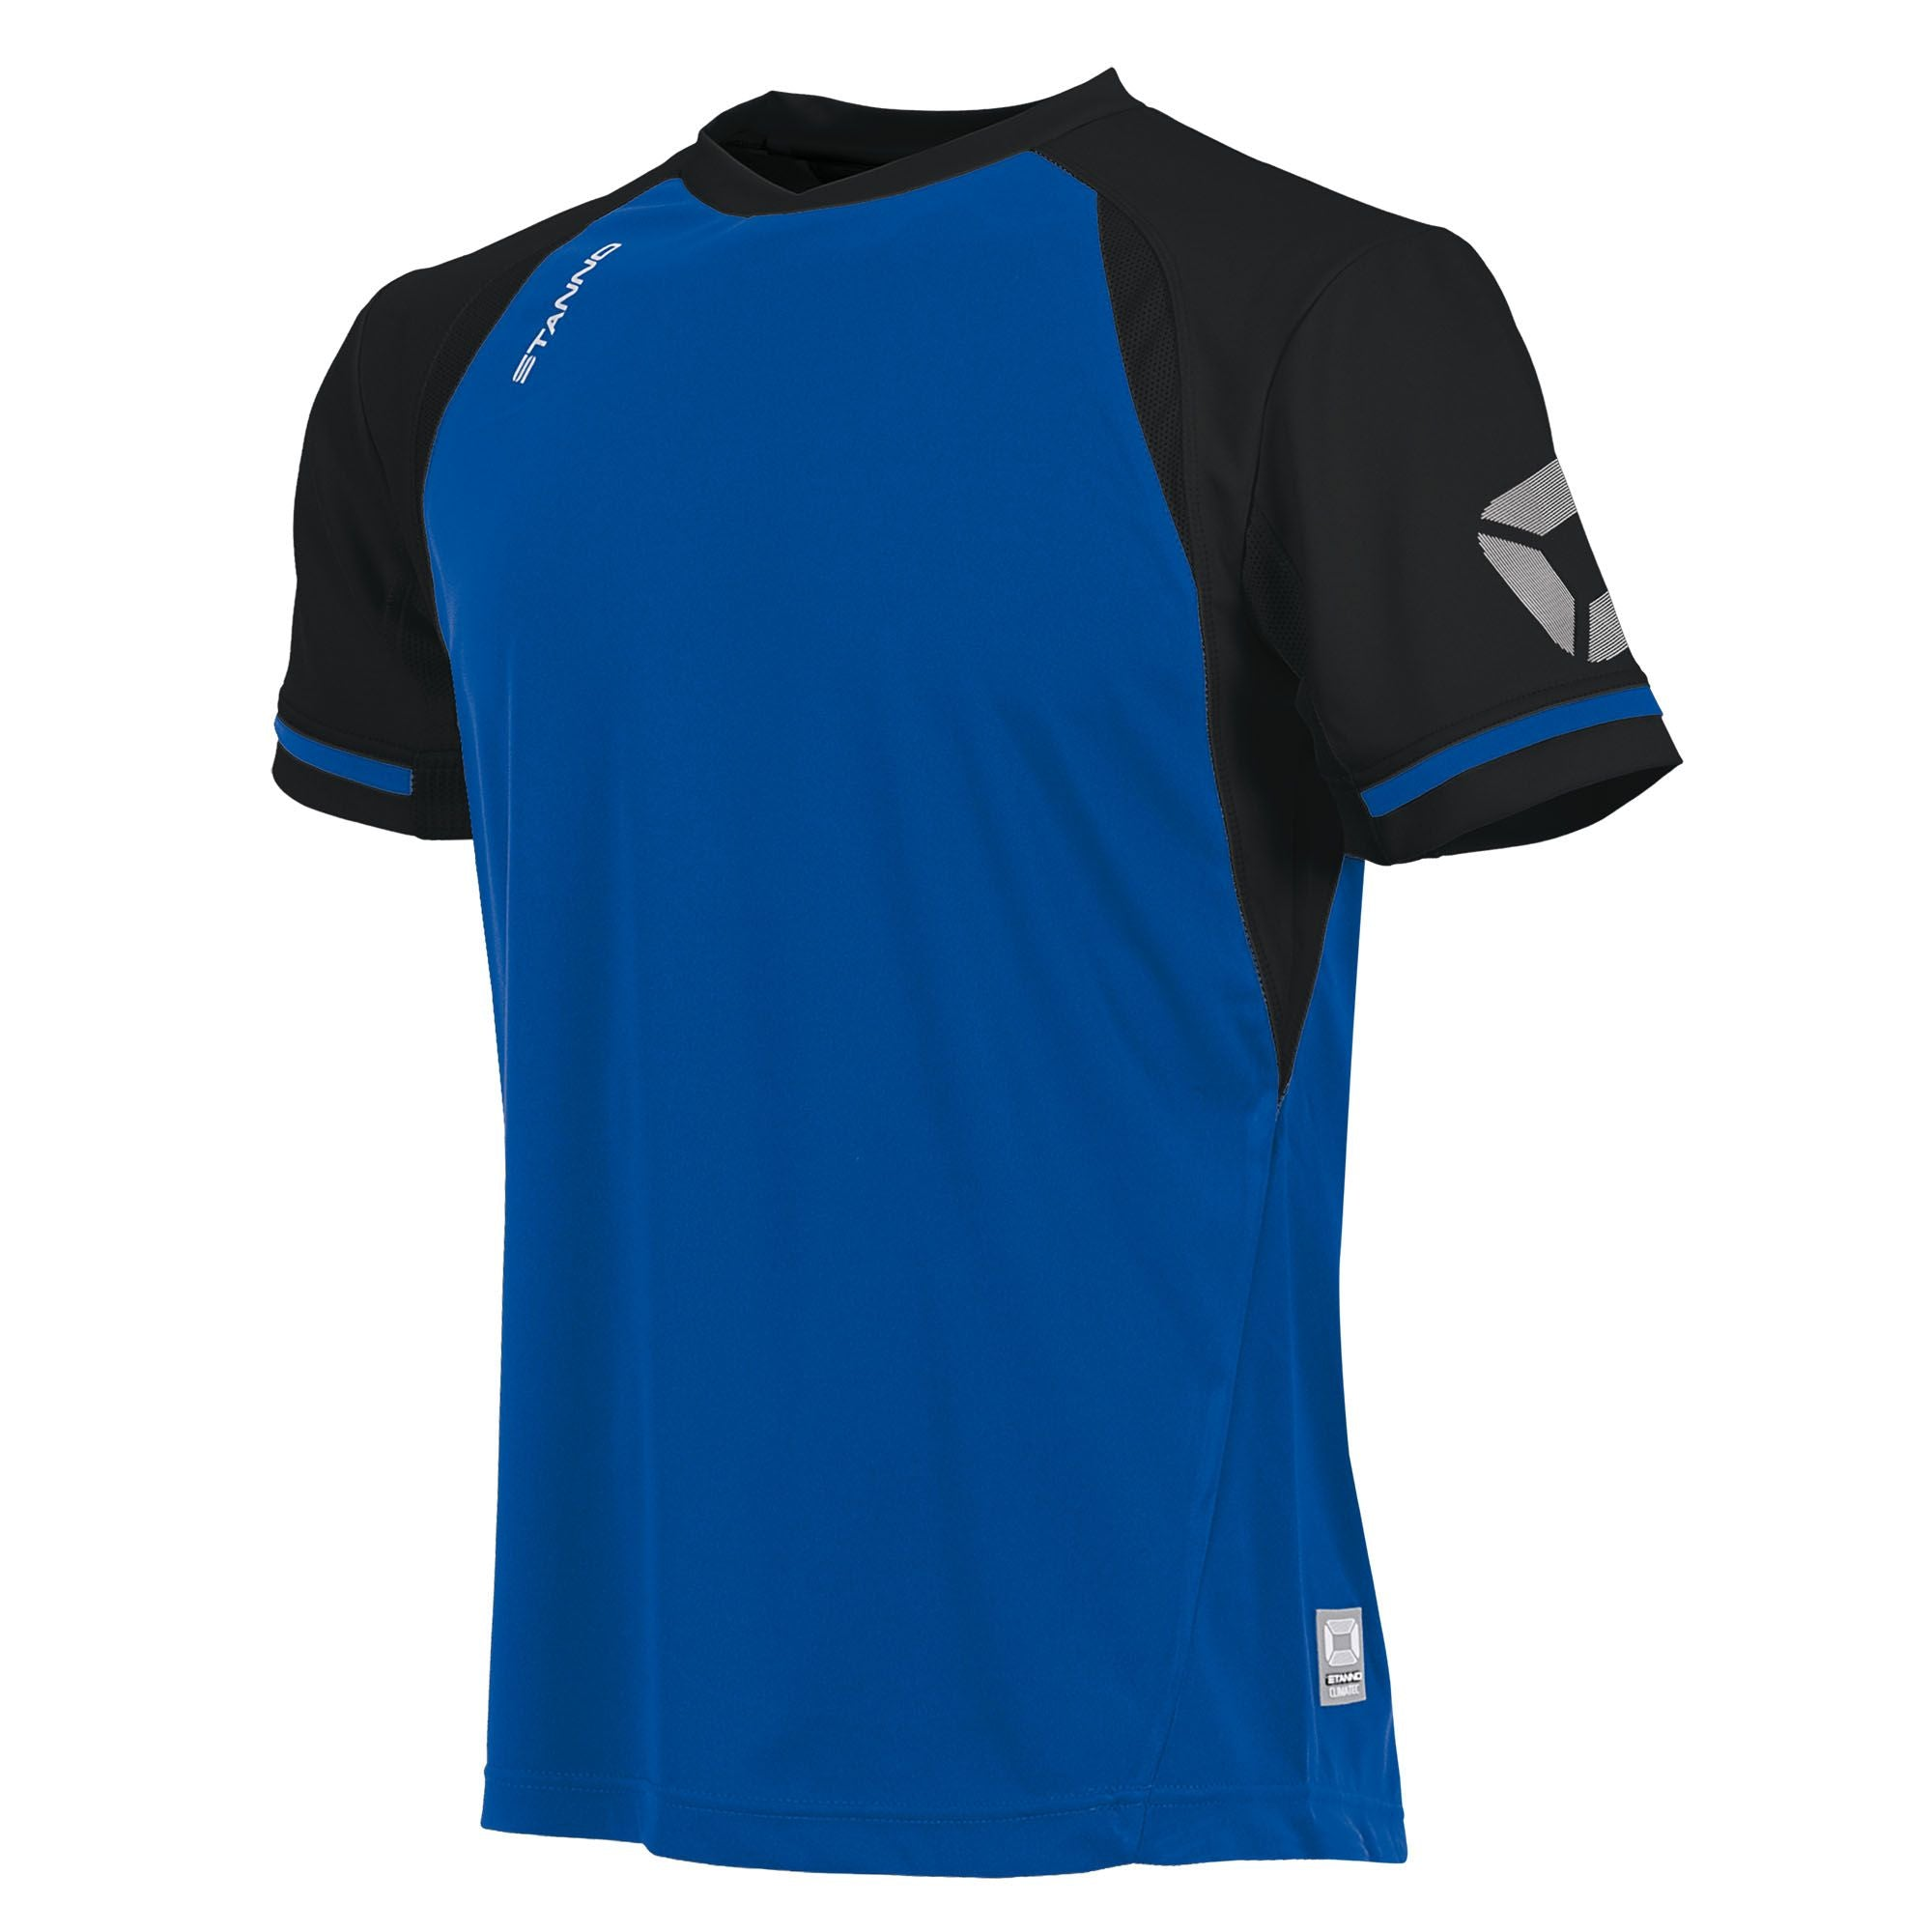 short sleeved Stanno Liga shirt in royal blue with contrast black sleeves and collar, Stadium logo on the sleeve.